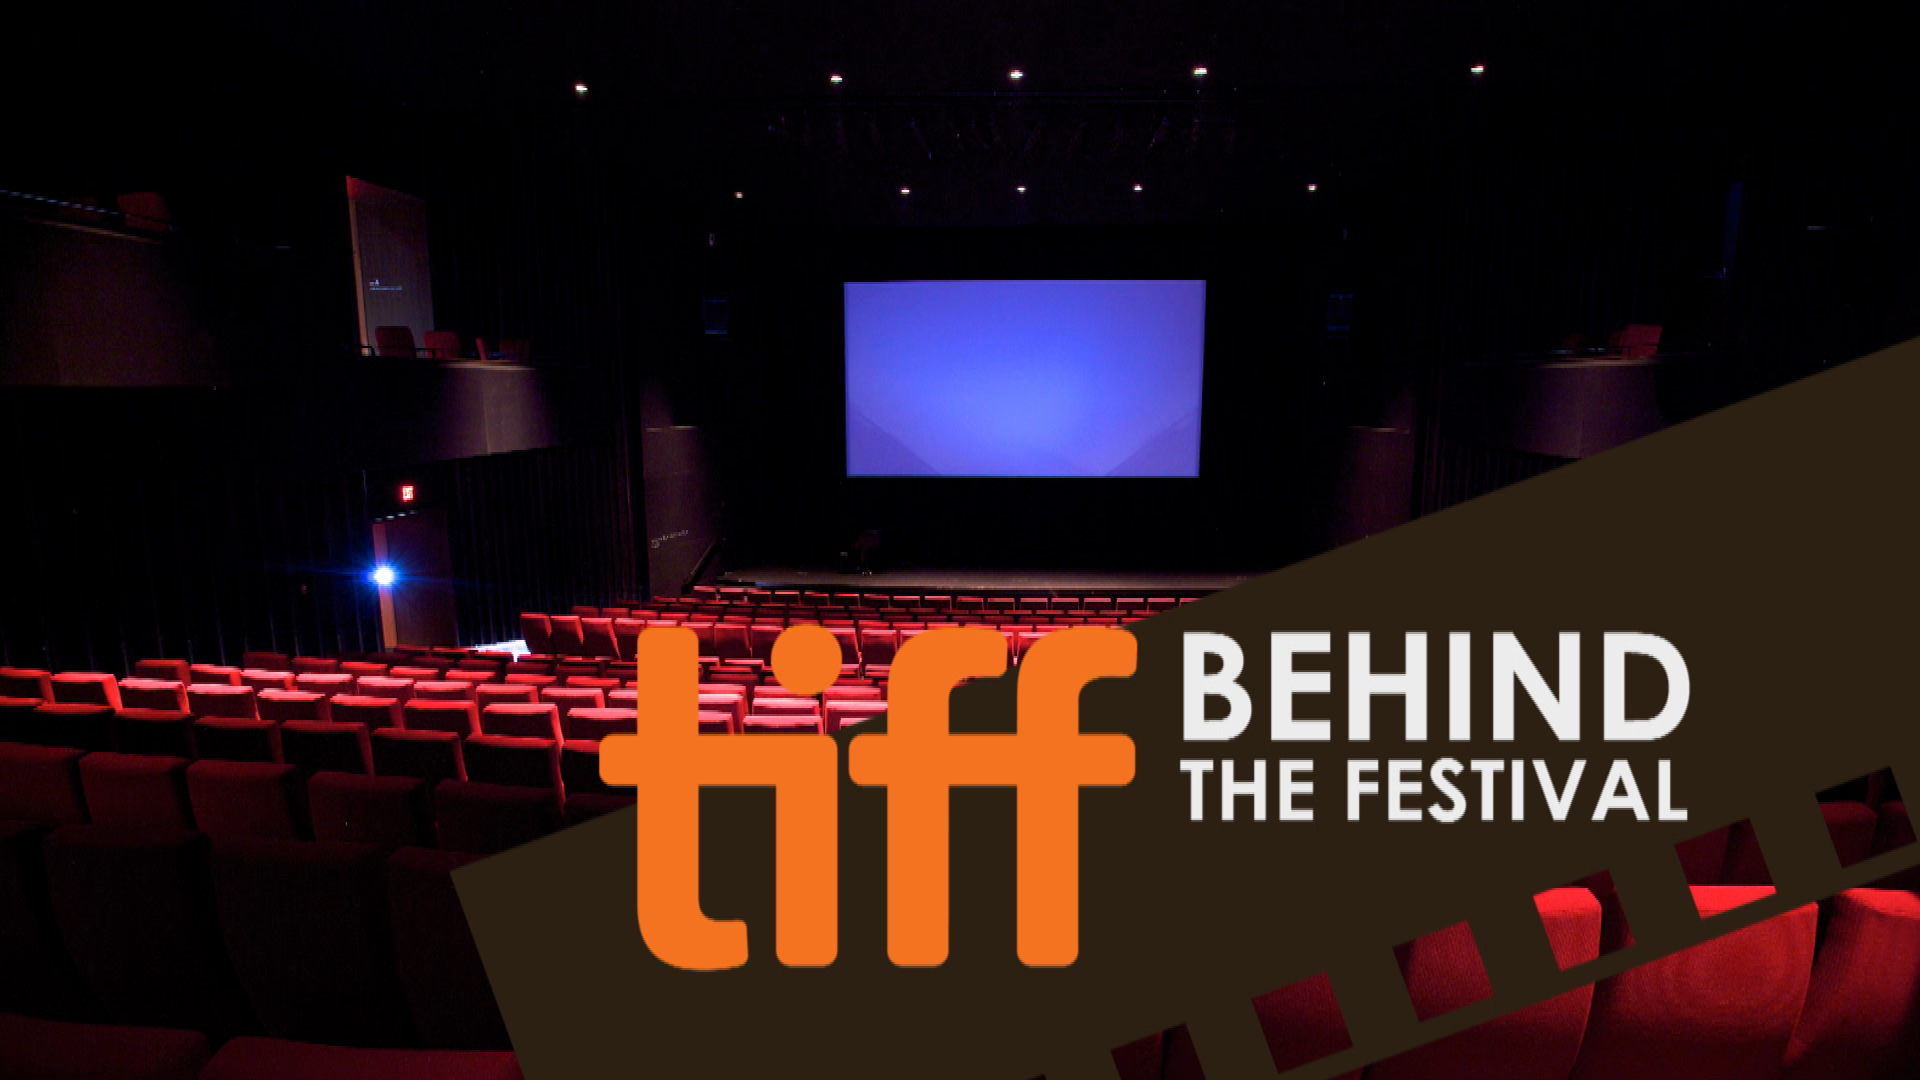 tiff behind the festival